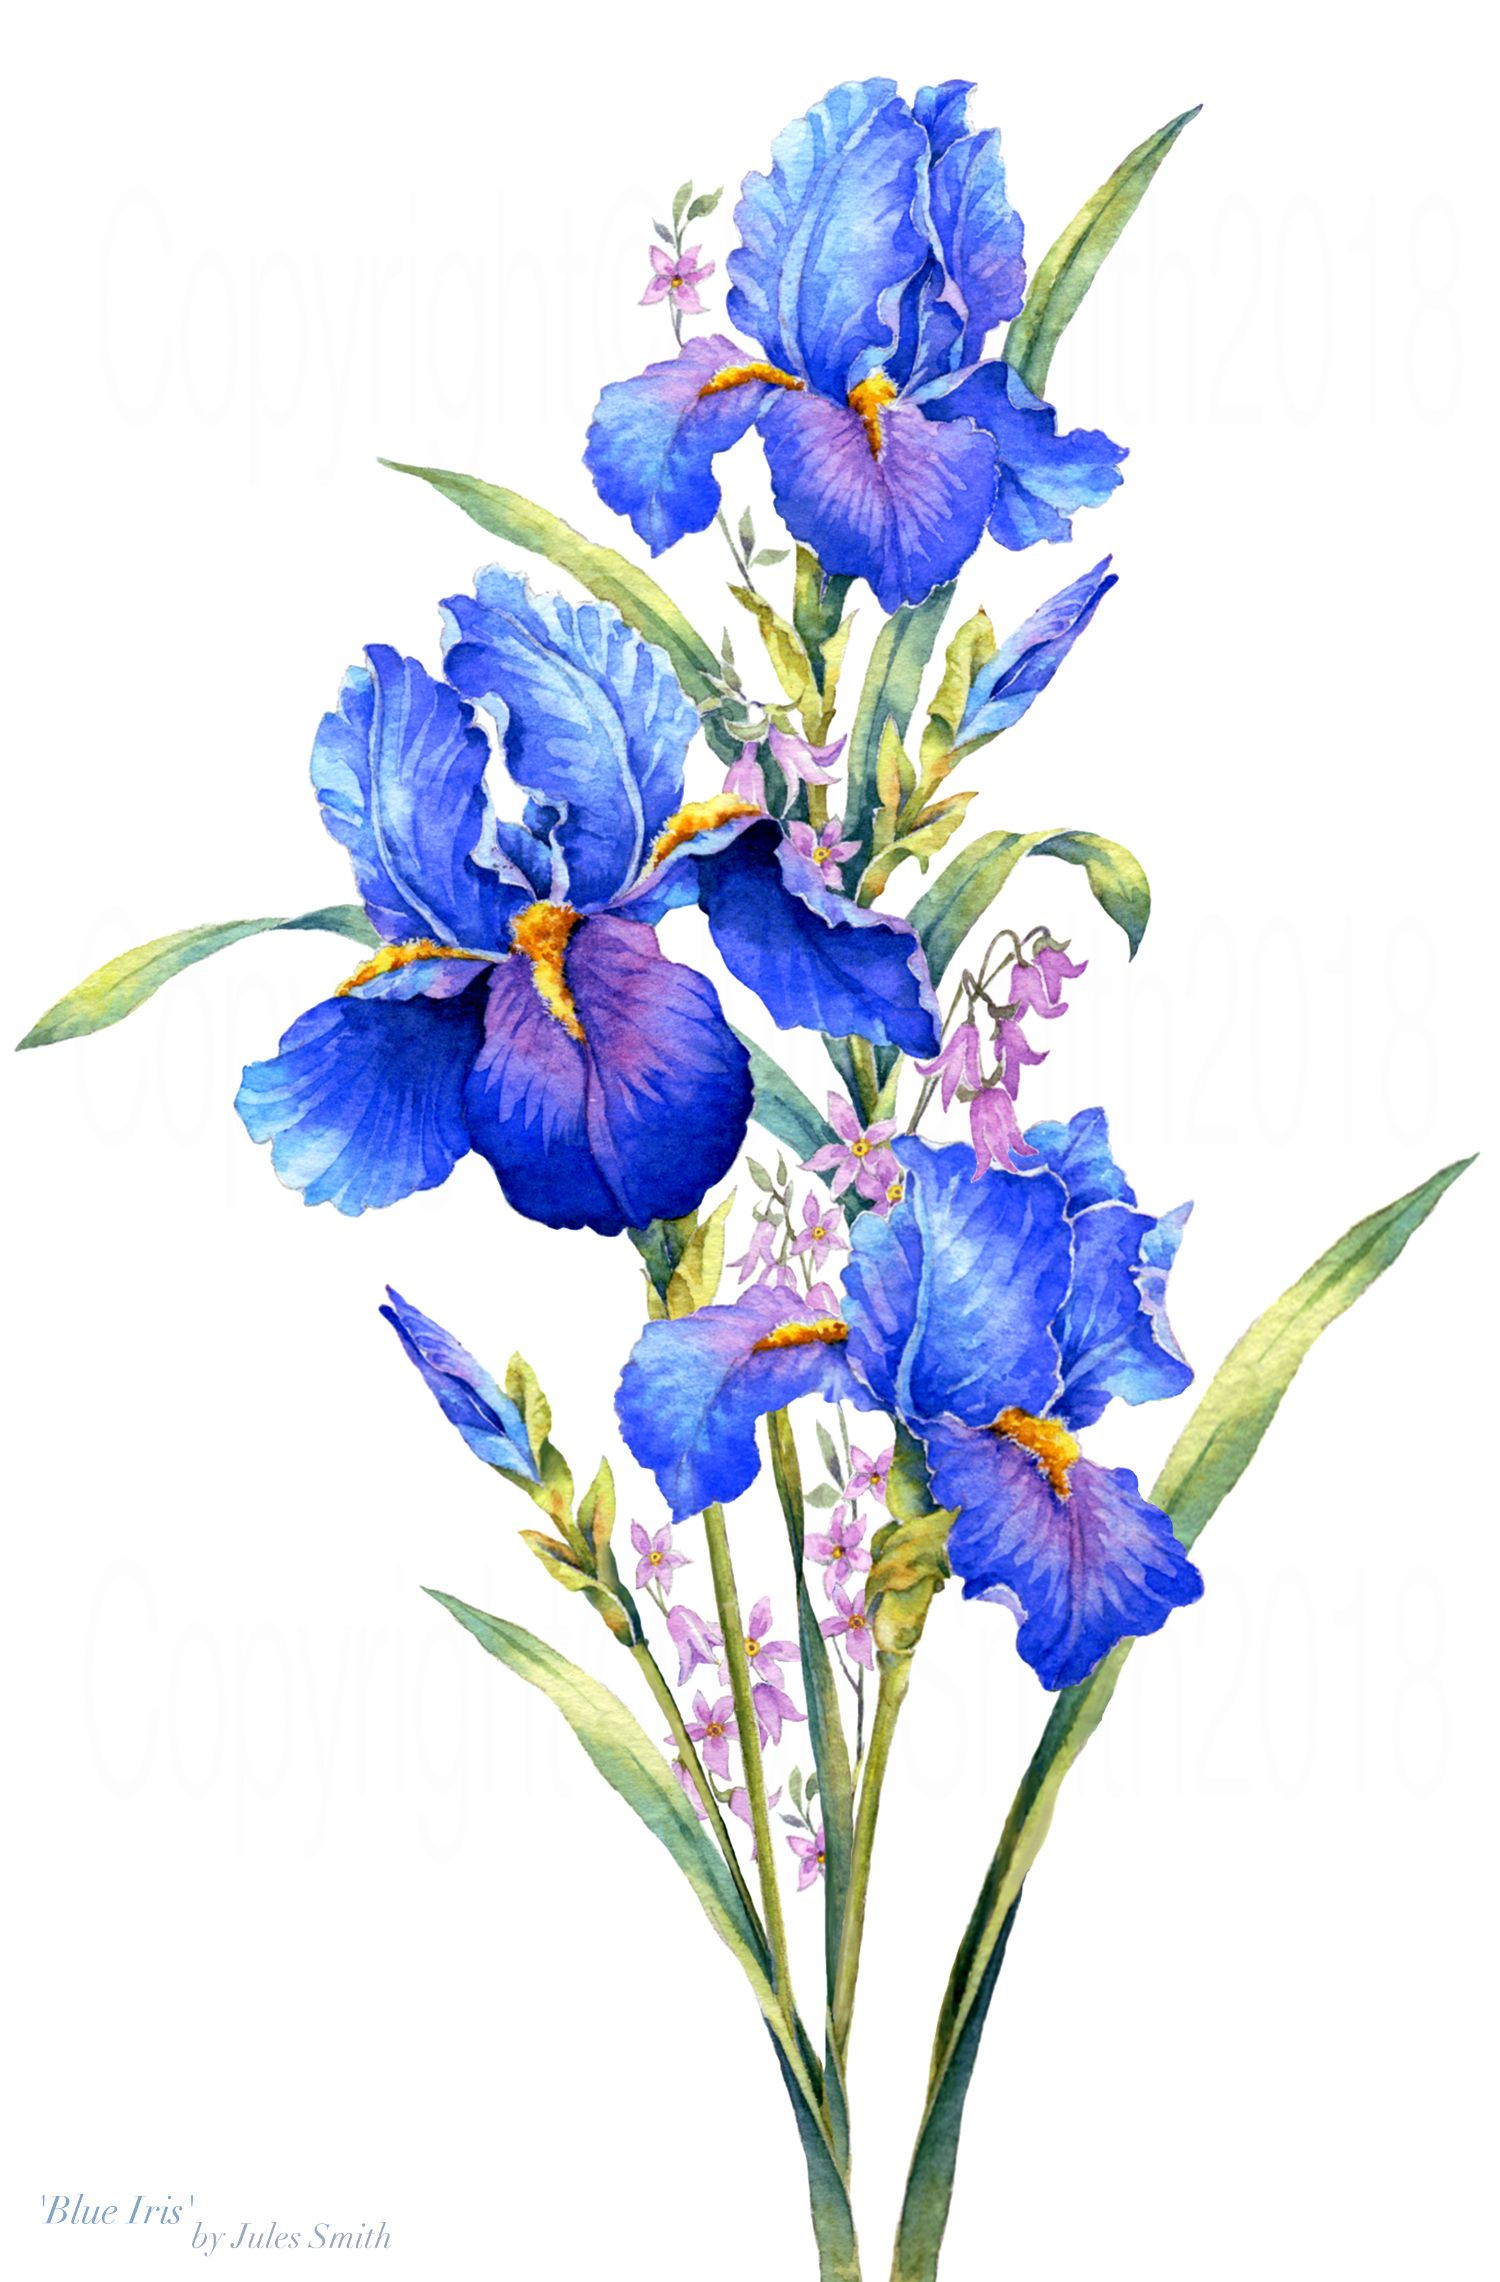 Watercolour Painting Blue Iris Inspired By The Natural Beauty Of Flowers Watercolor Flowers Paintings Iris Drawing Iris Painting